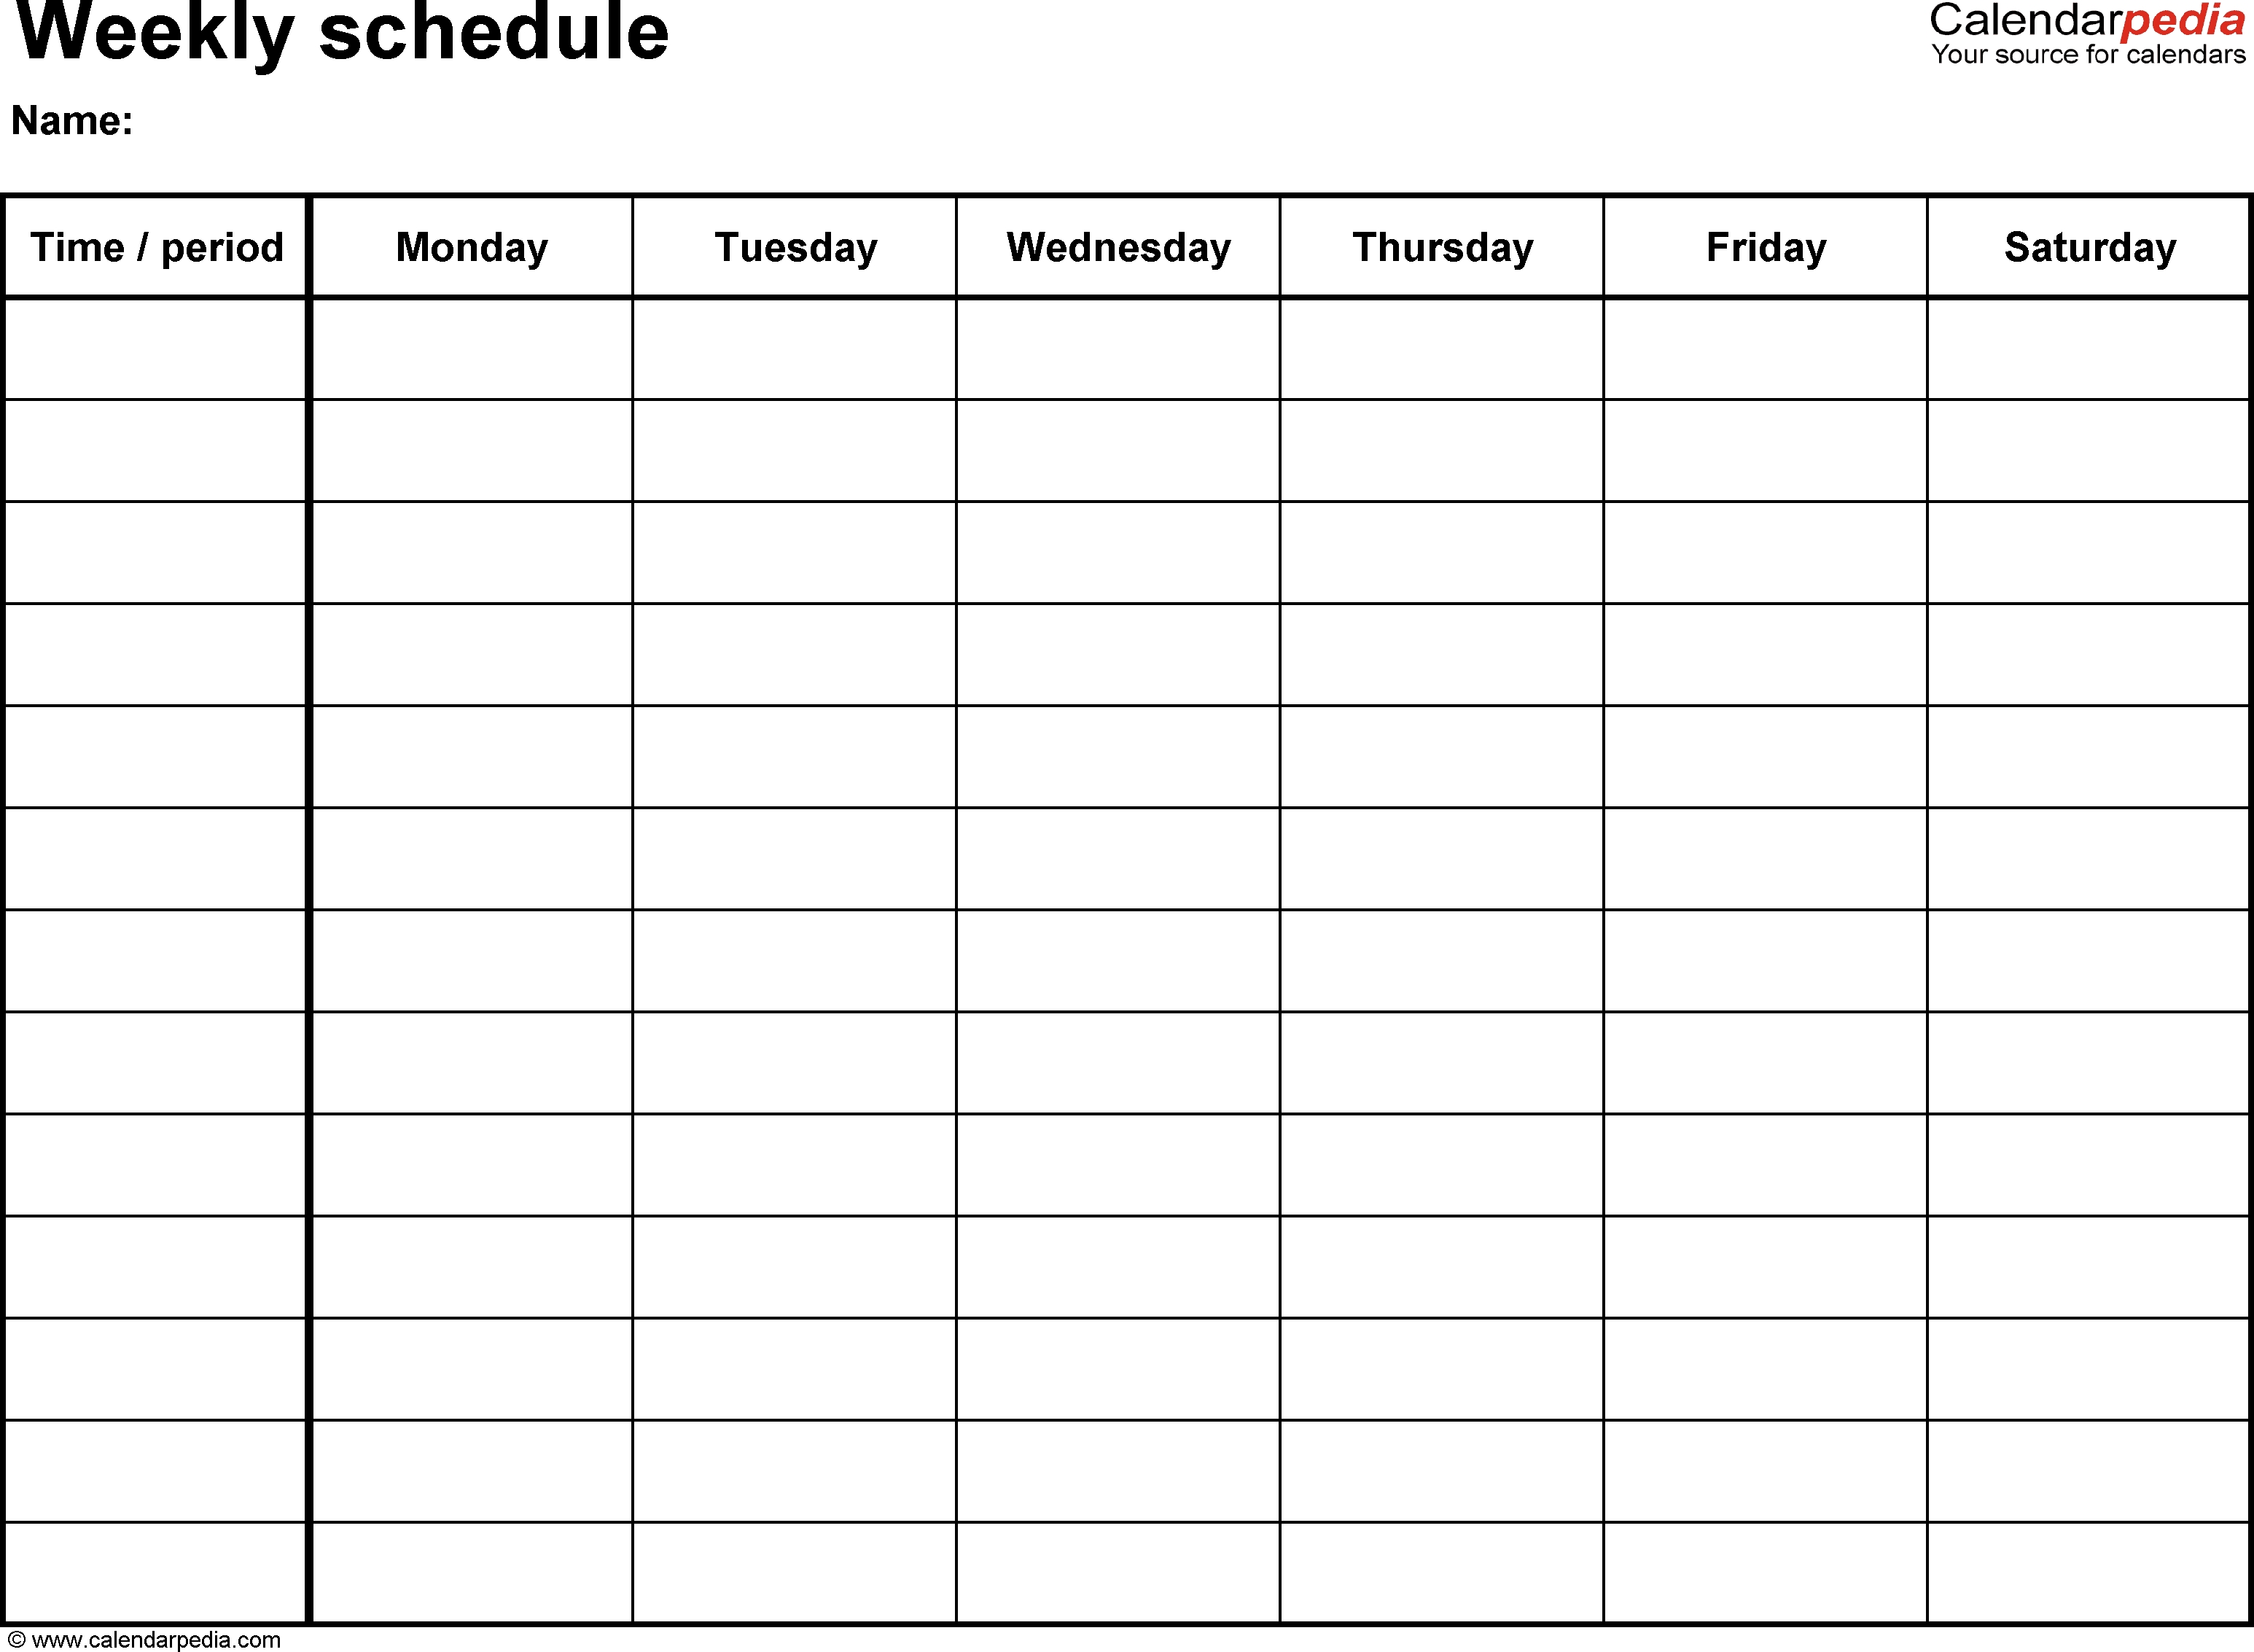 fillable weekly calendar  Printable Weekly Calendar With 15 Minute Time Slots erdferdf